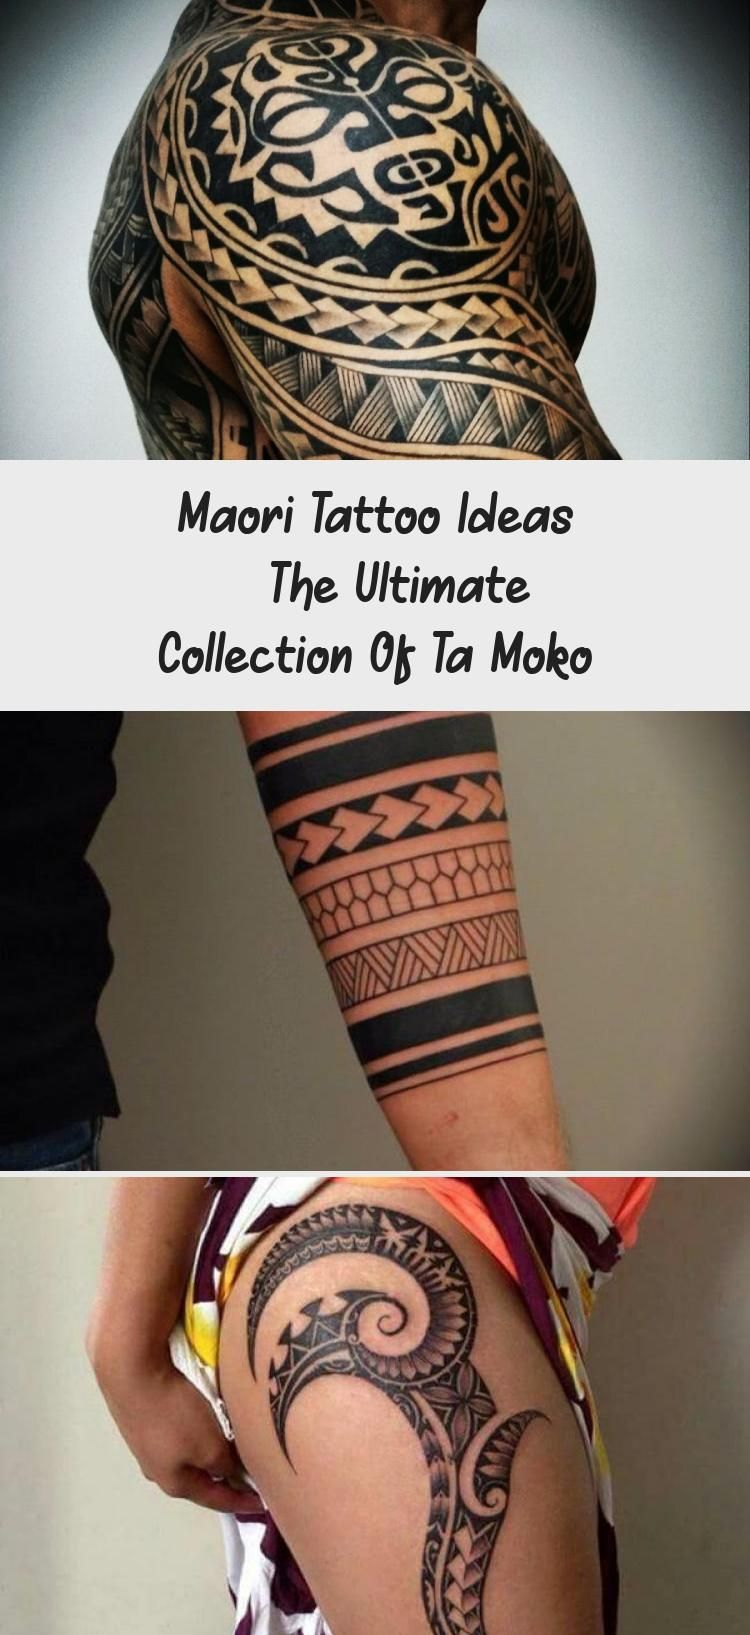 The Ultimate Collection Of Ta Moko: The Ultimate Collection Of Ta Moko In